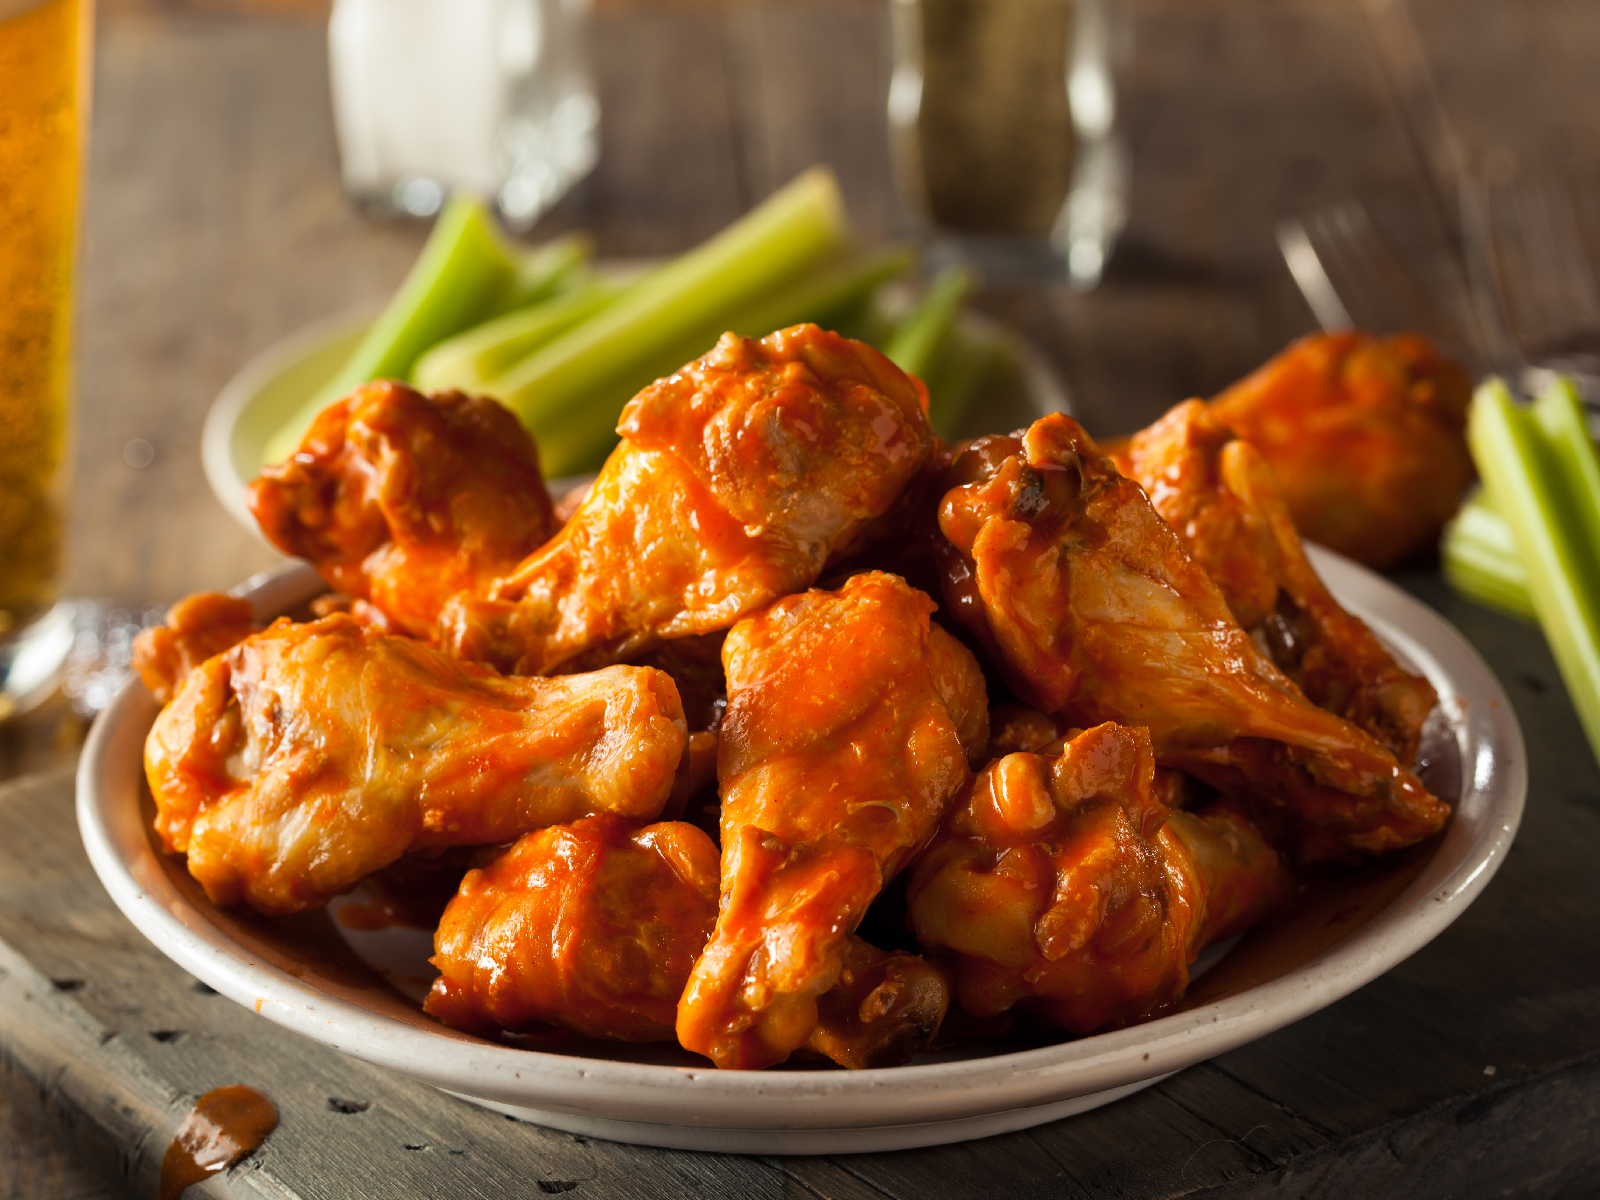 National Chicken Wing Day 2019: Where to Find Deals and Free Buffalo Wings